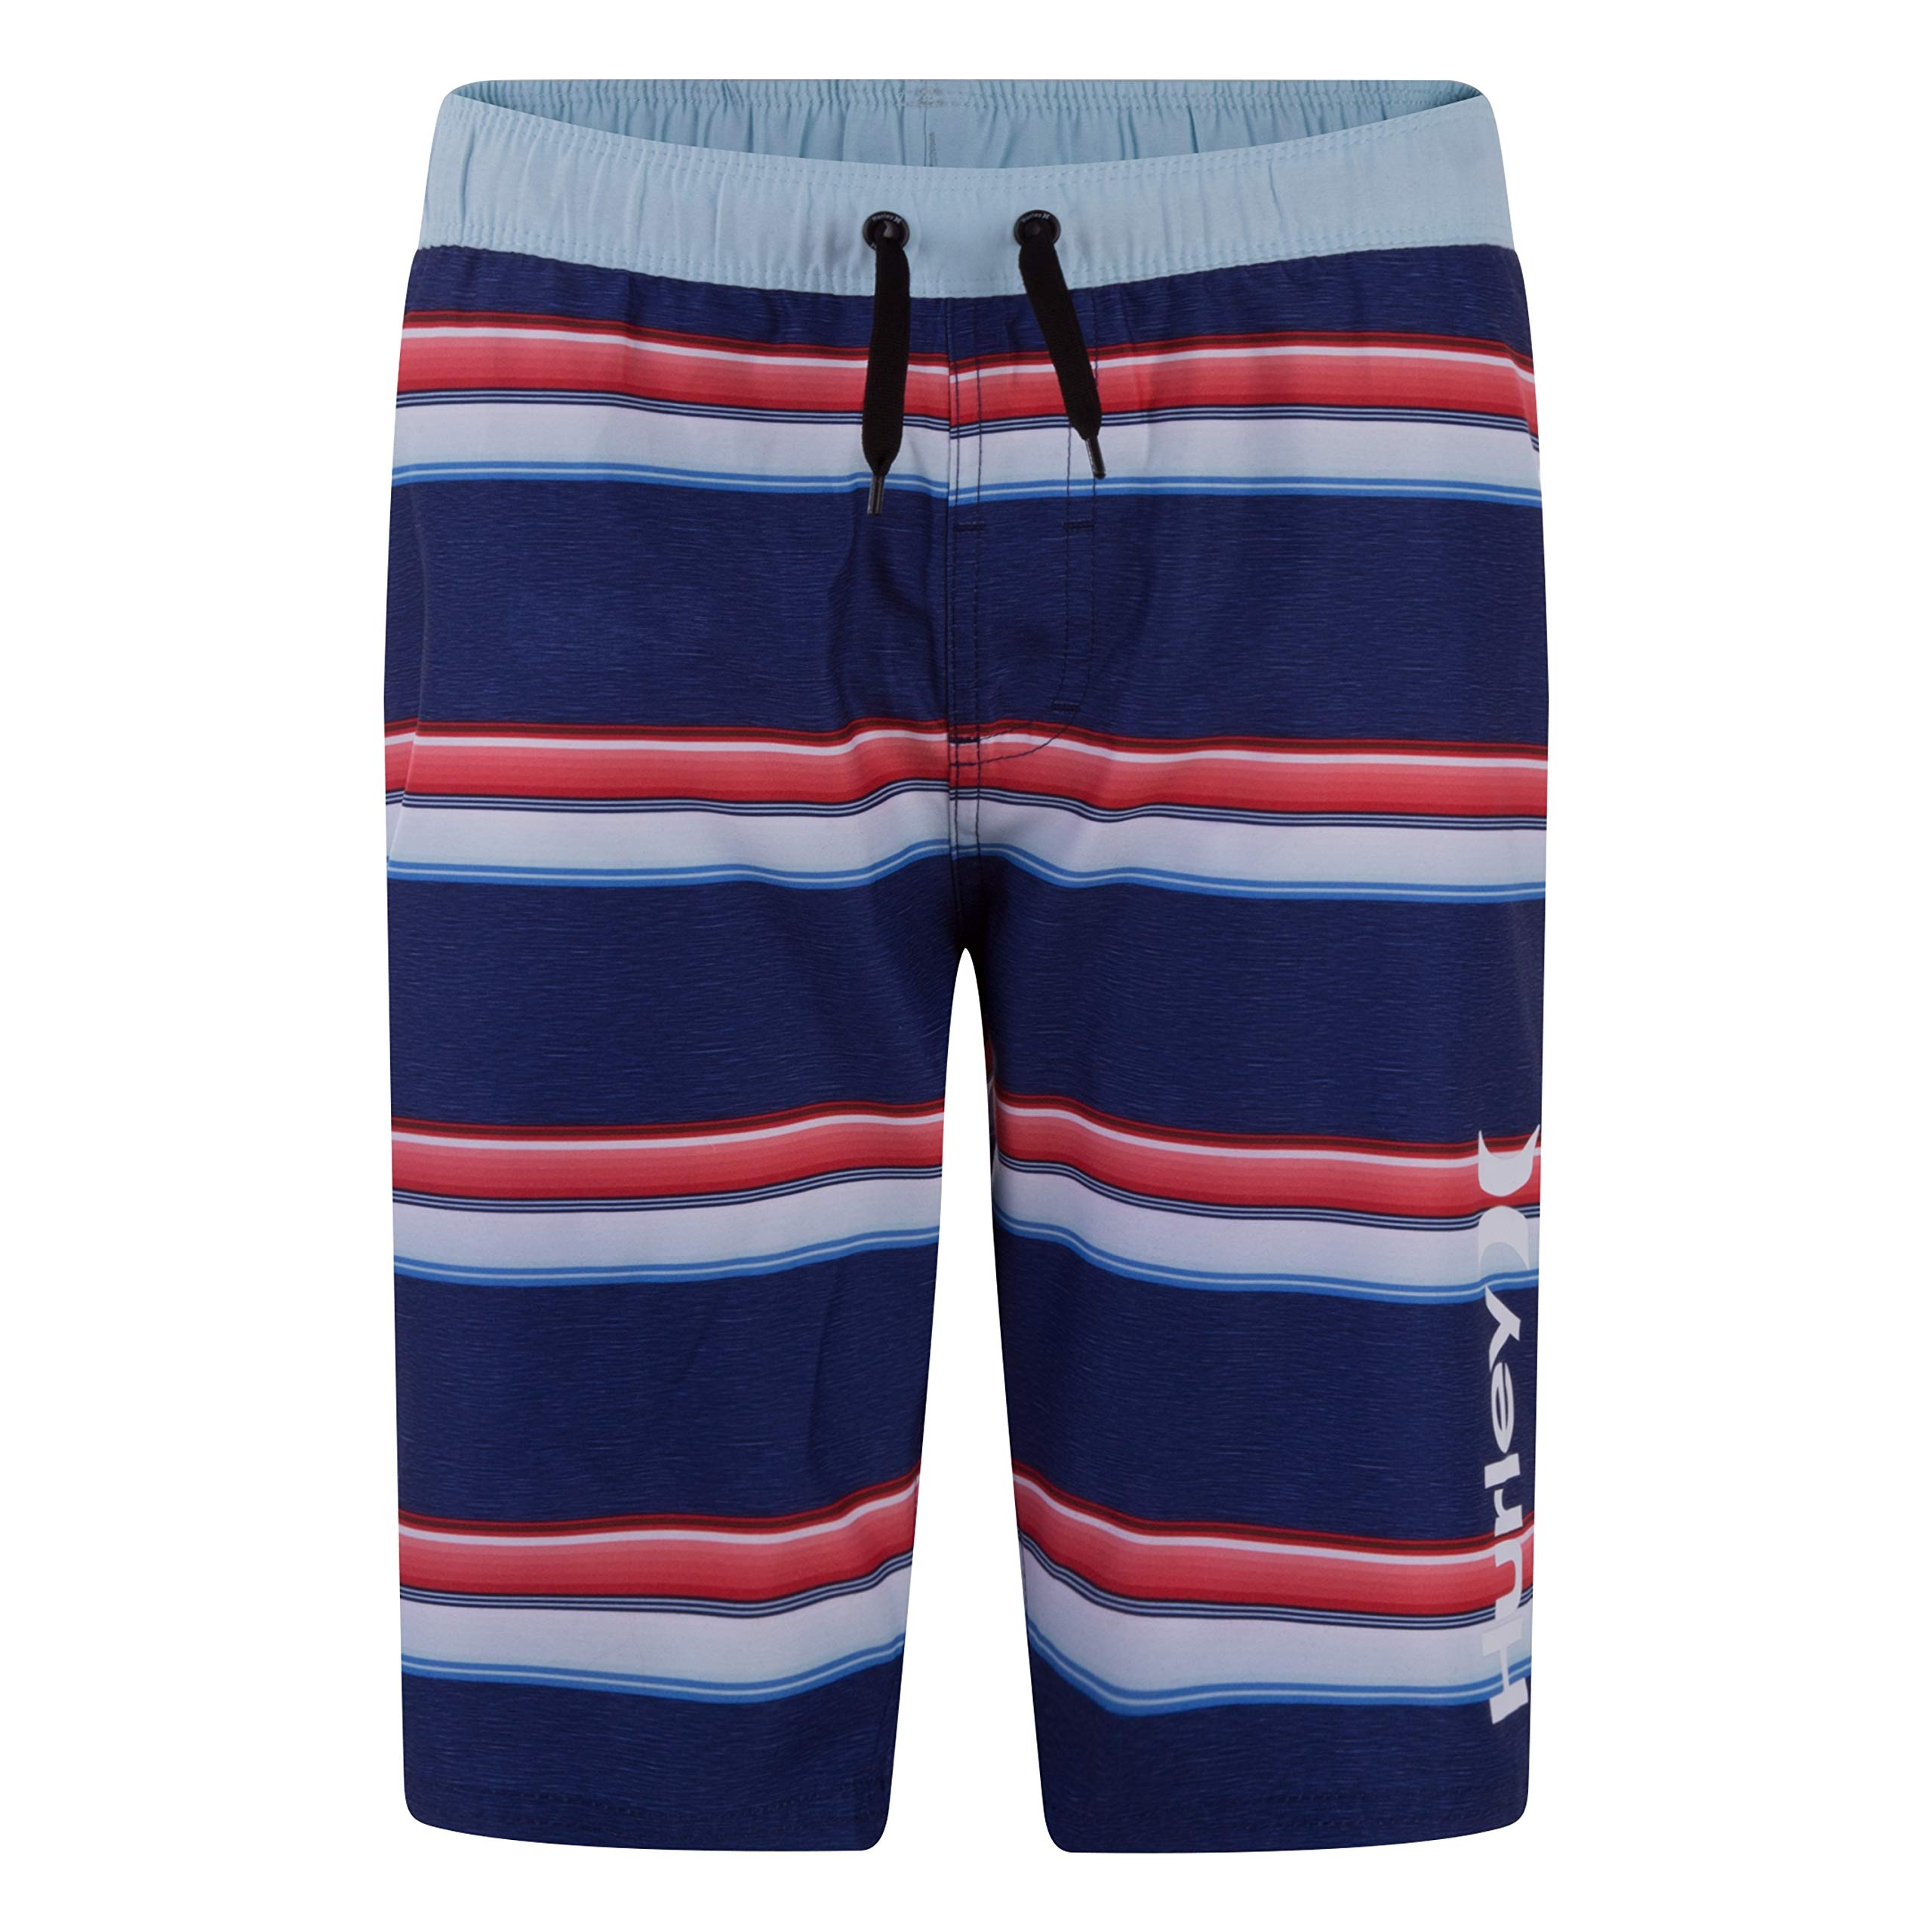 Hurley Toddler Boys' Board Shorts, Deep Royal Blue Striped, 2T